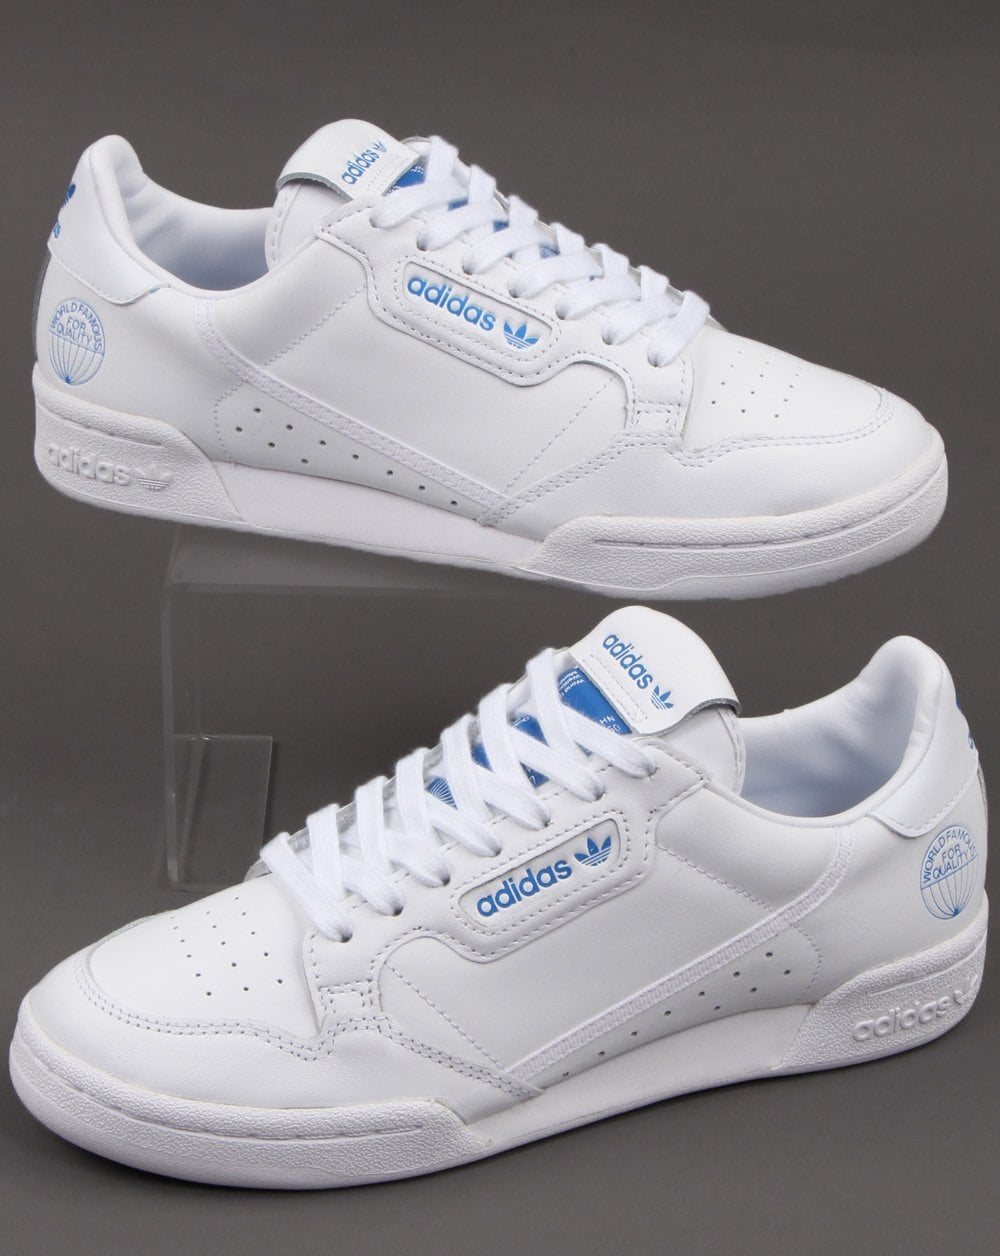 Palmadita Malabares Crítica  Adidas Continental 80 Trainers White/Blue - 80s Casual Classics